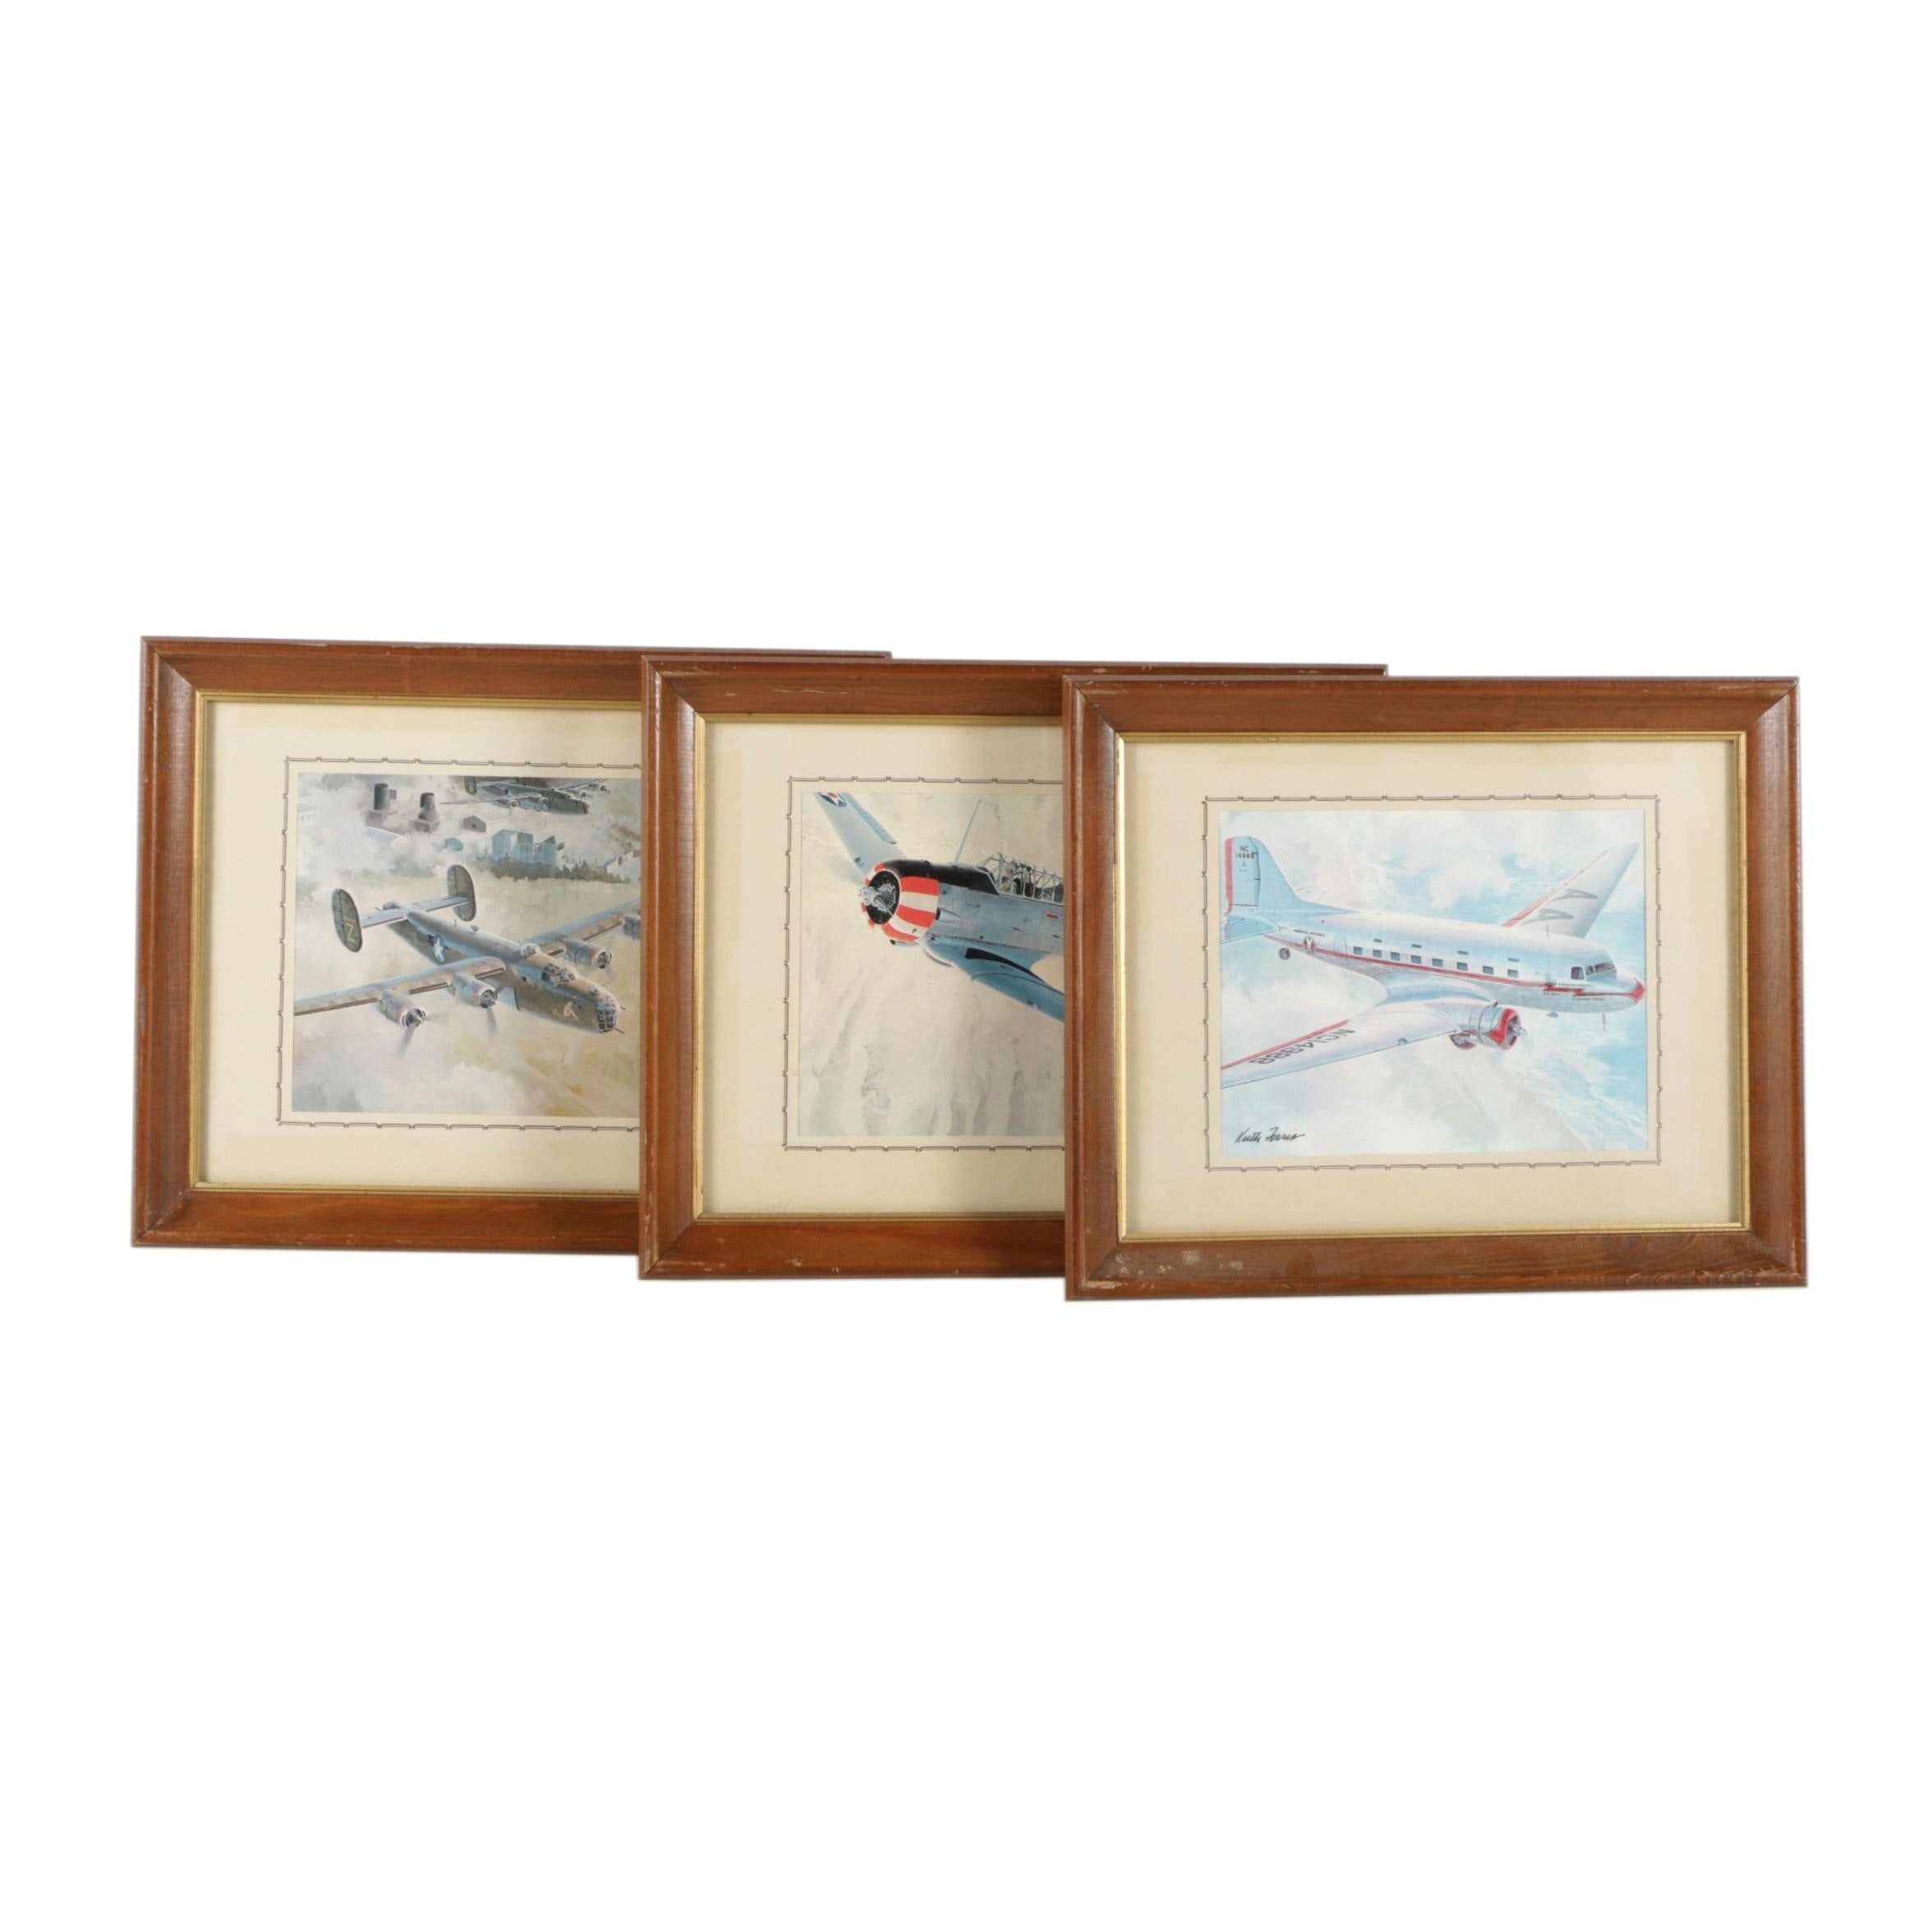 Keith Ferris Offset Lithographs on Paper of Planes